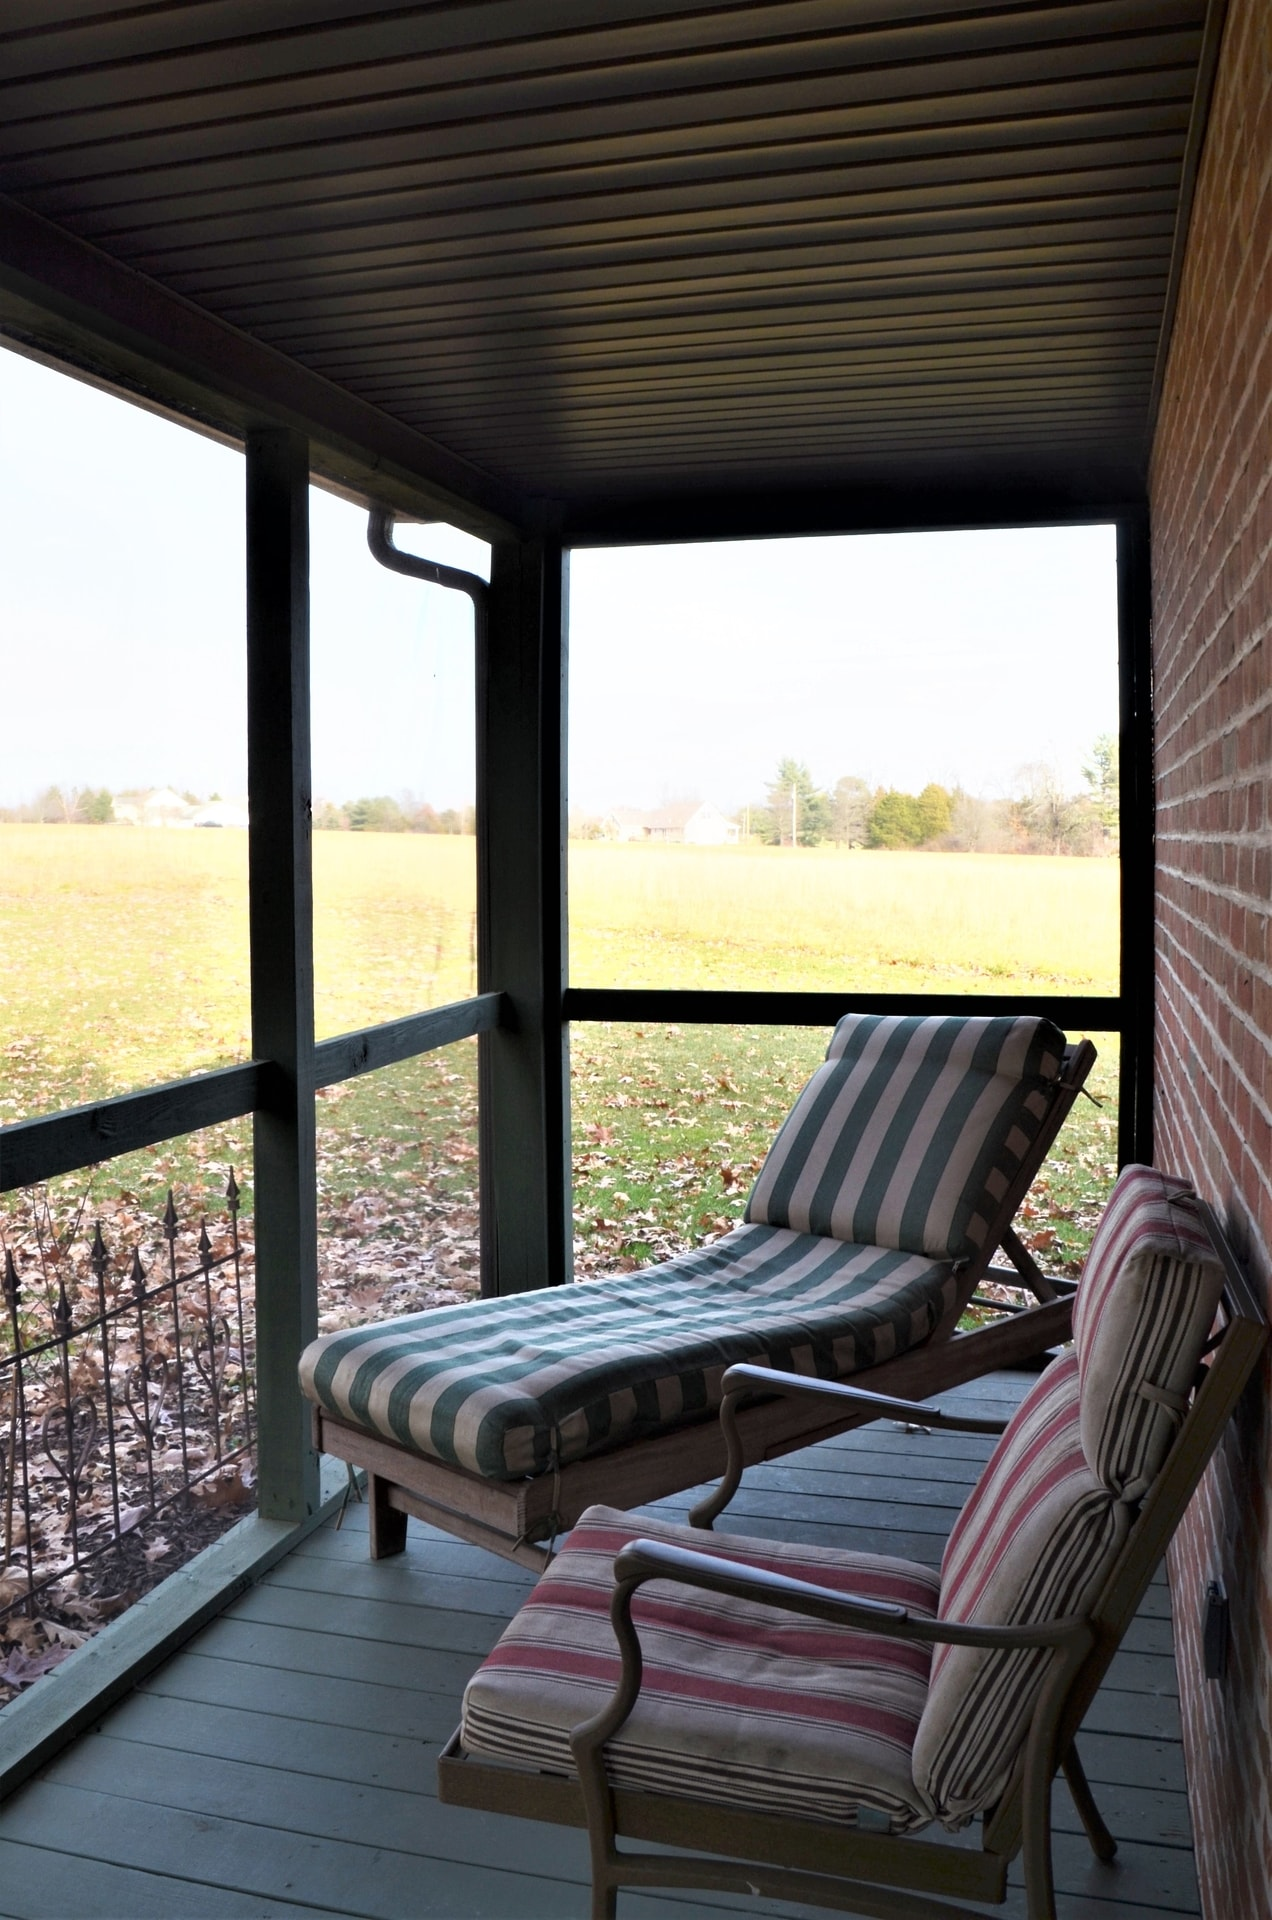 Screened porch lounging